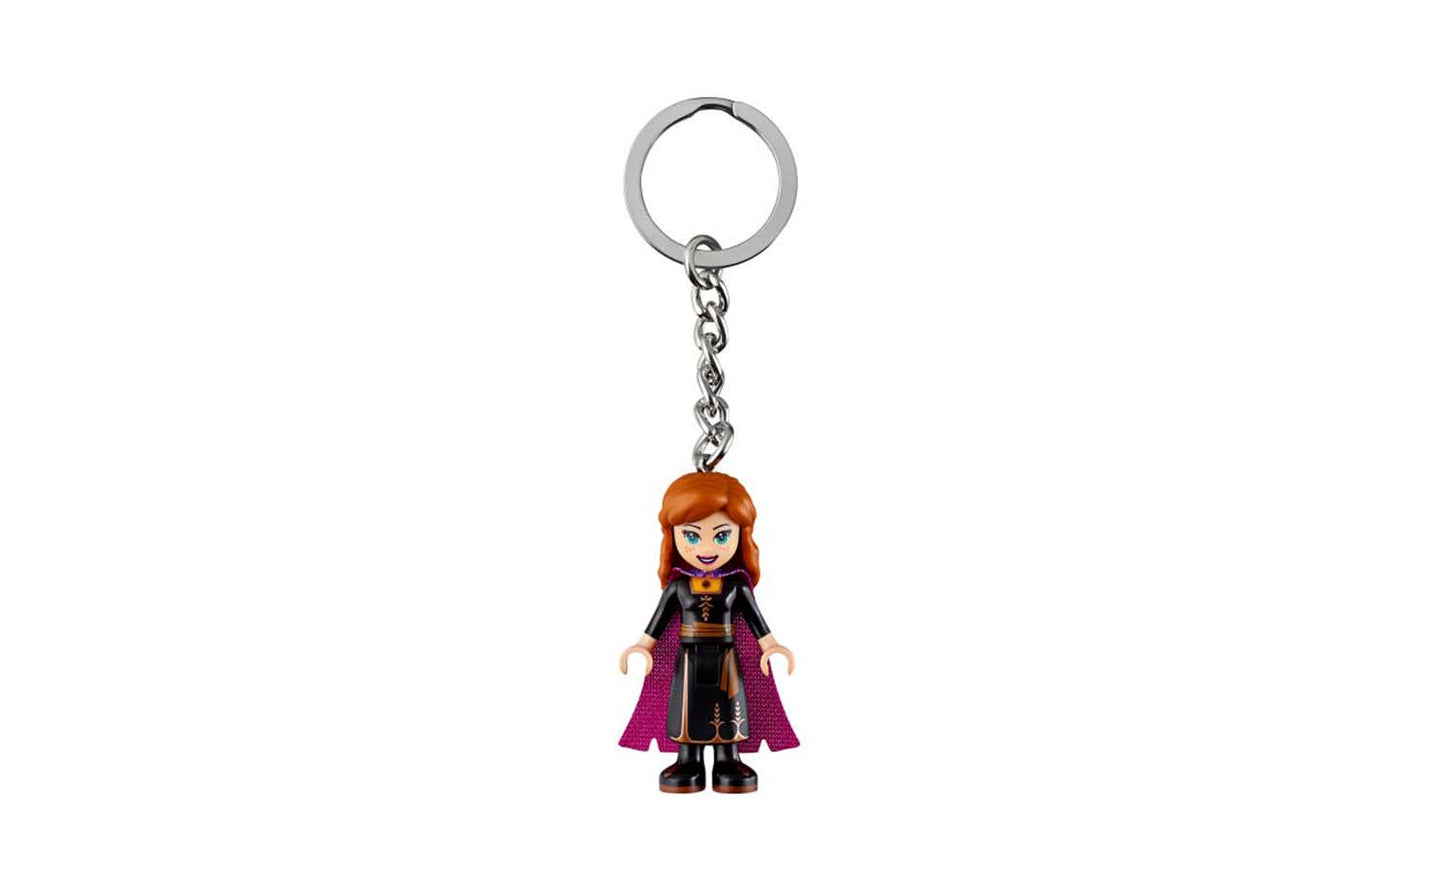 853969 | LEGO® Disney™ Frozen 2 Anna Key Chain